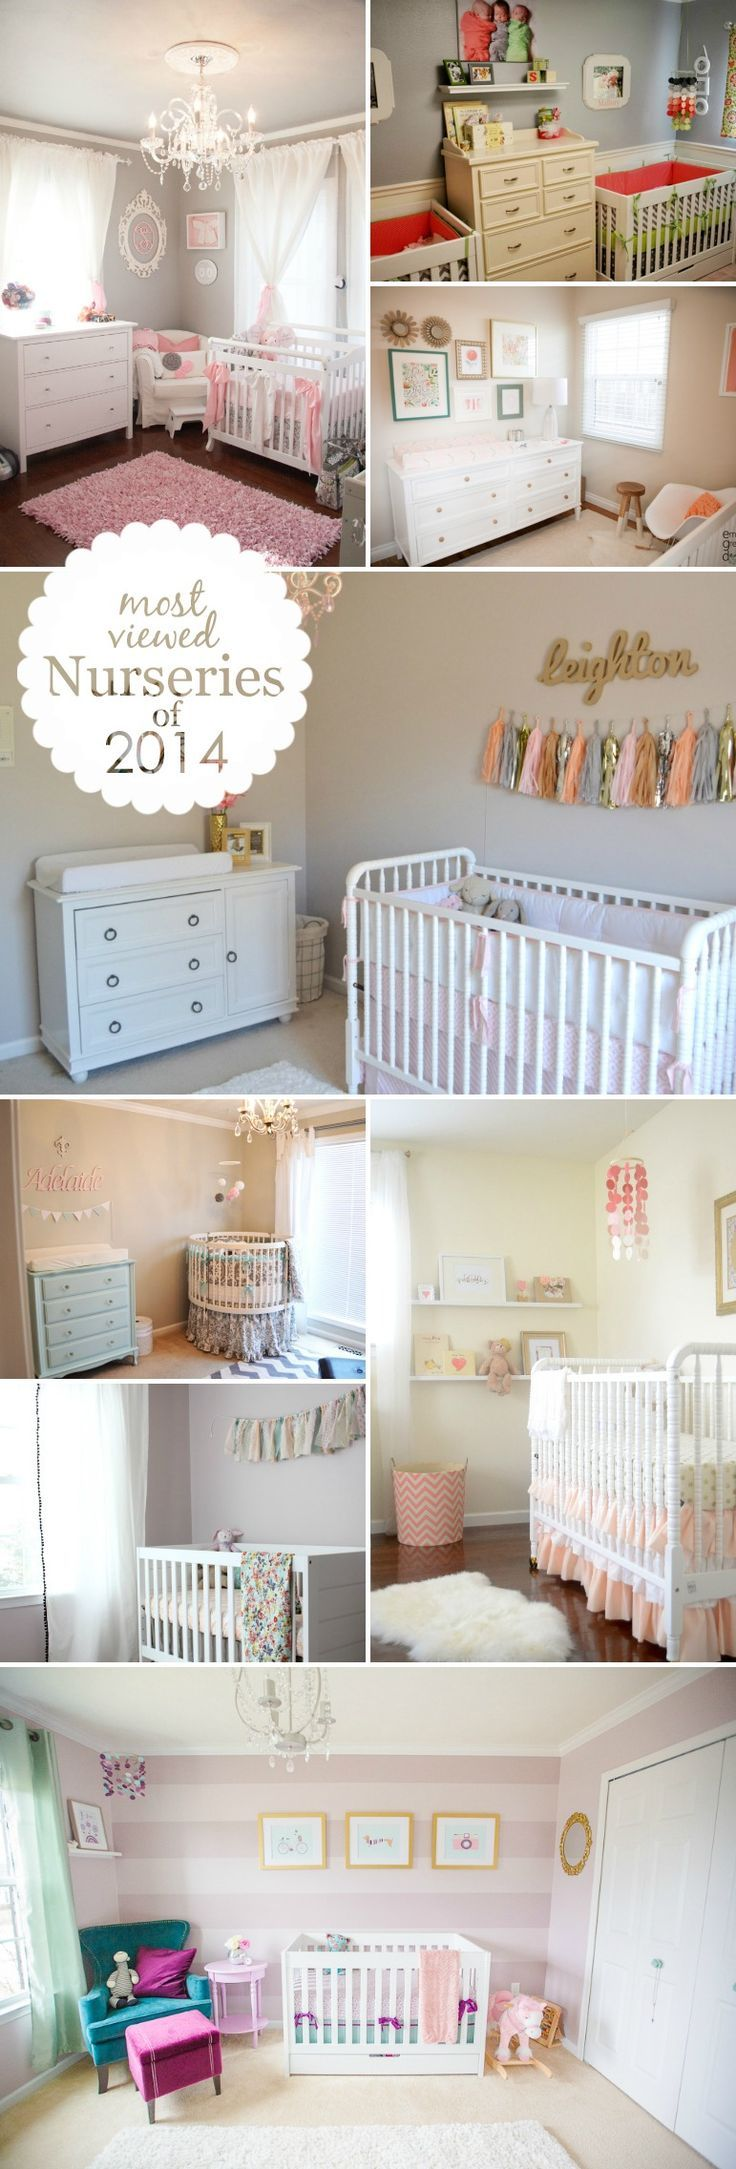 59 best New baby images on Pinterest | After pregnancy, Baby boys ...